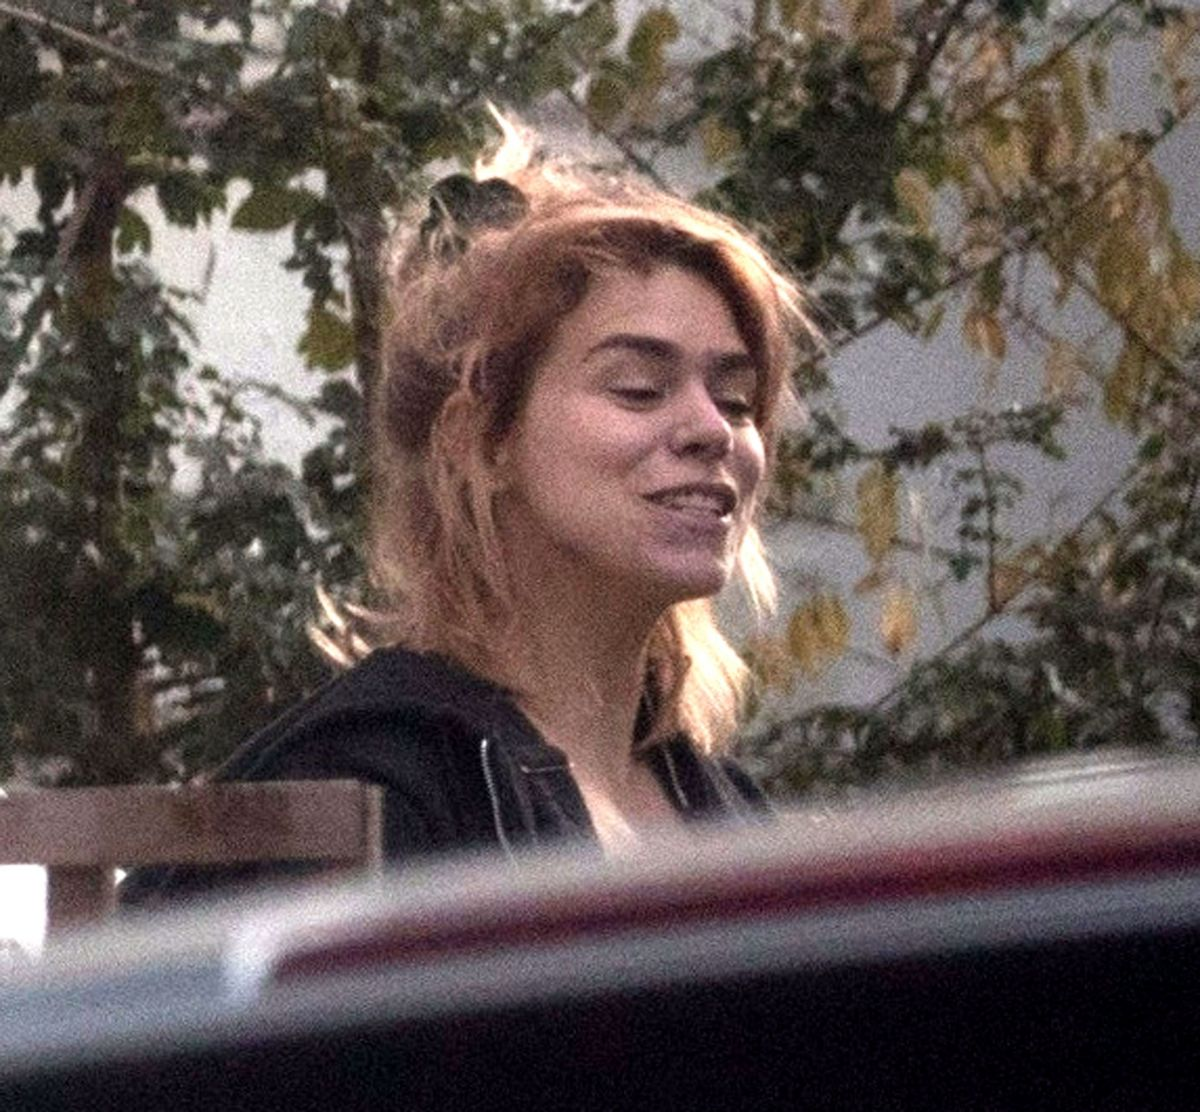 Billie Piper Is all smiles outside her home with her pet dog decorating her house, London